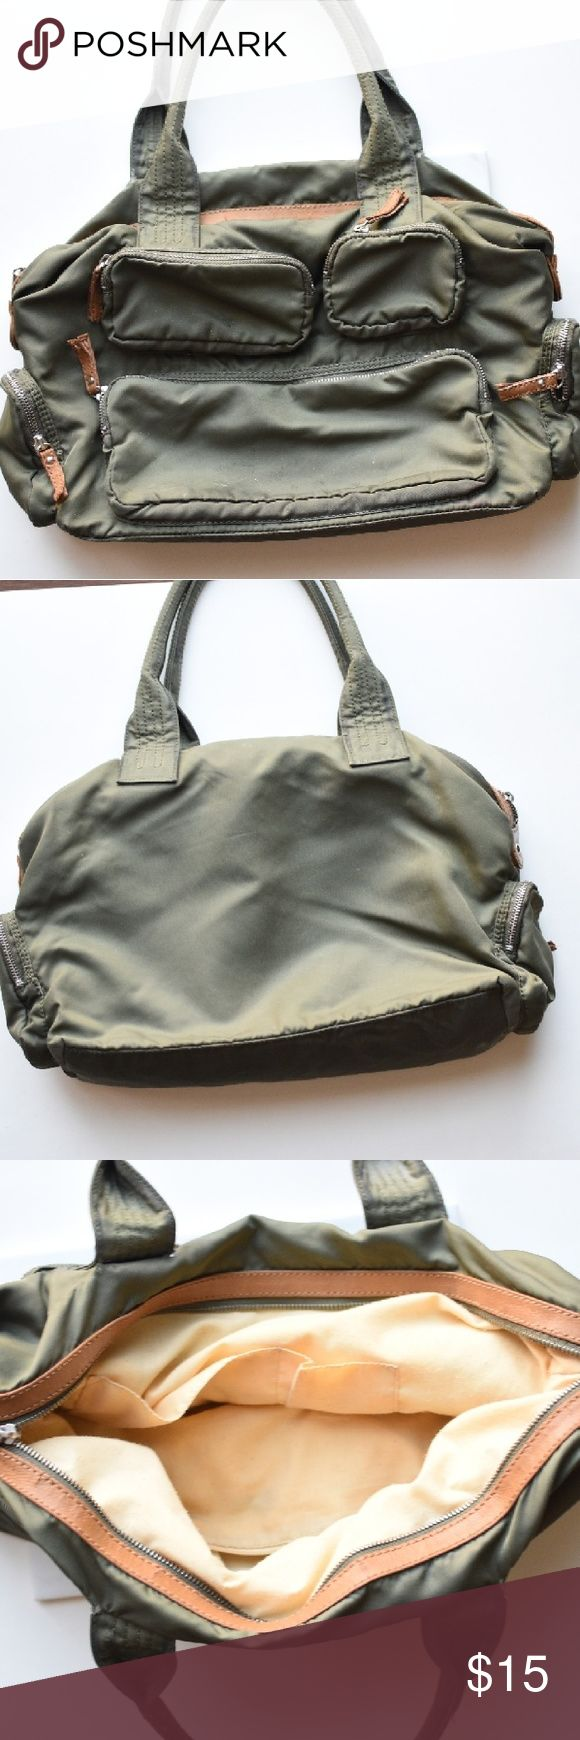 Gap Bag Gap bag that can be used for traveling, carrying your laptop, or as a gym bag. Beautiful bag with multi pockets. Signs of wear present inside the bag. gap Bags Travel Bags